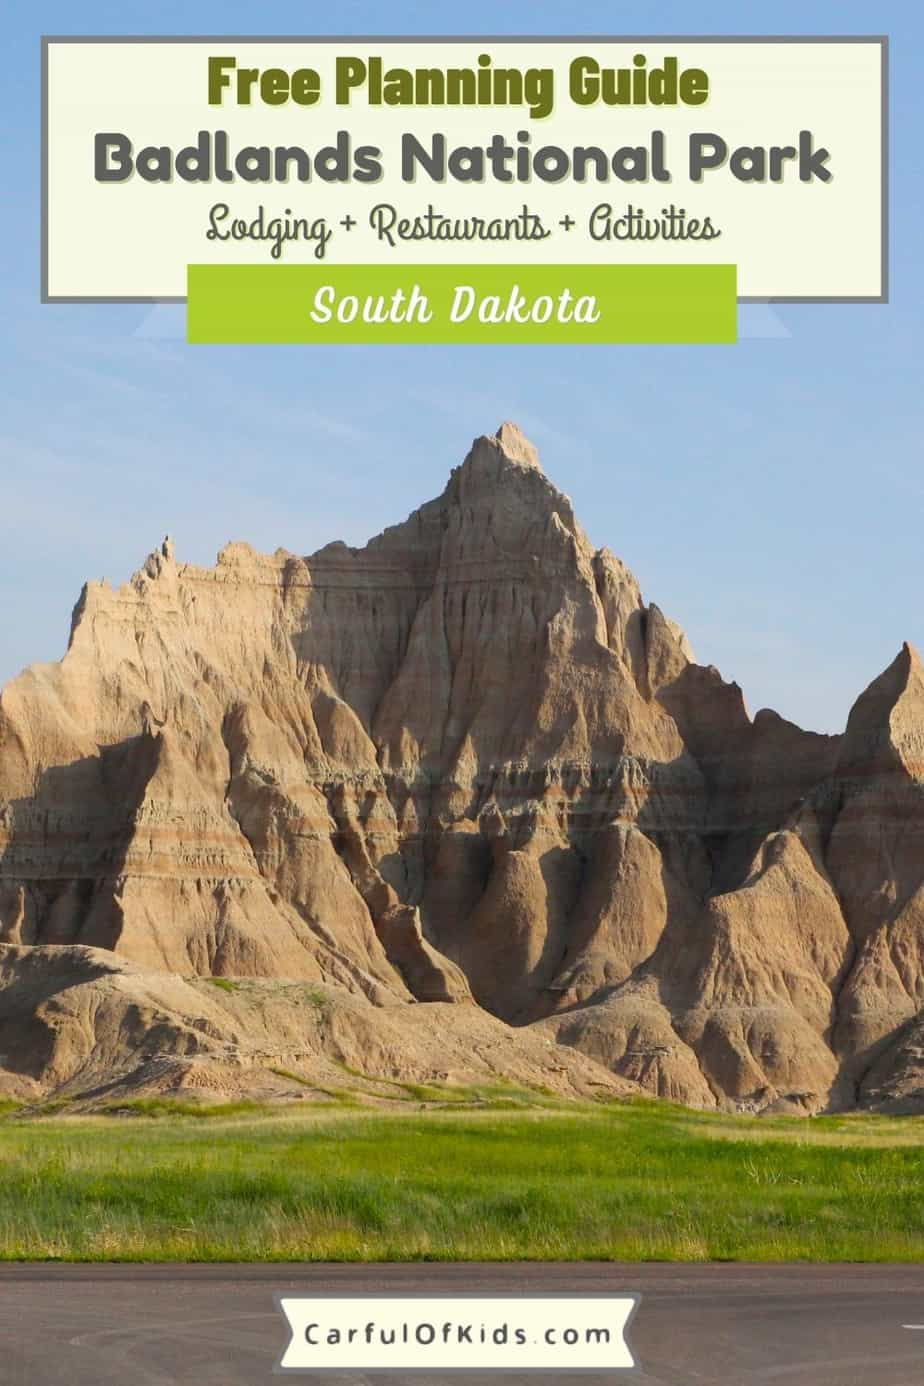 Your Free Planning Guide to Exploring Badlands National Park near South Dakota's Black Hills. Spend a few hours or spend all day. Get details on where to stay, where to eat and what to do when exploring Badlands National Park. What to do in Badlands National Park | Where to stay in Badlands National Park | Where to eat in Badlands National Park | National Parks of South Dakota #NationalParks #SouthDakota